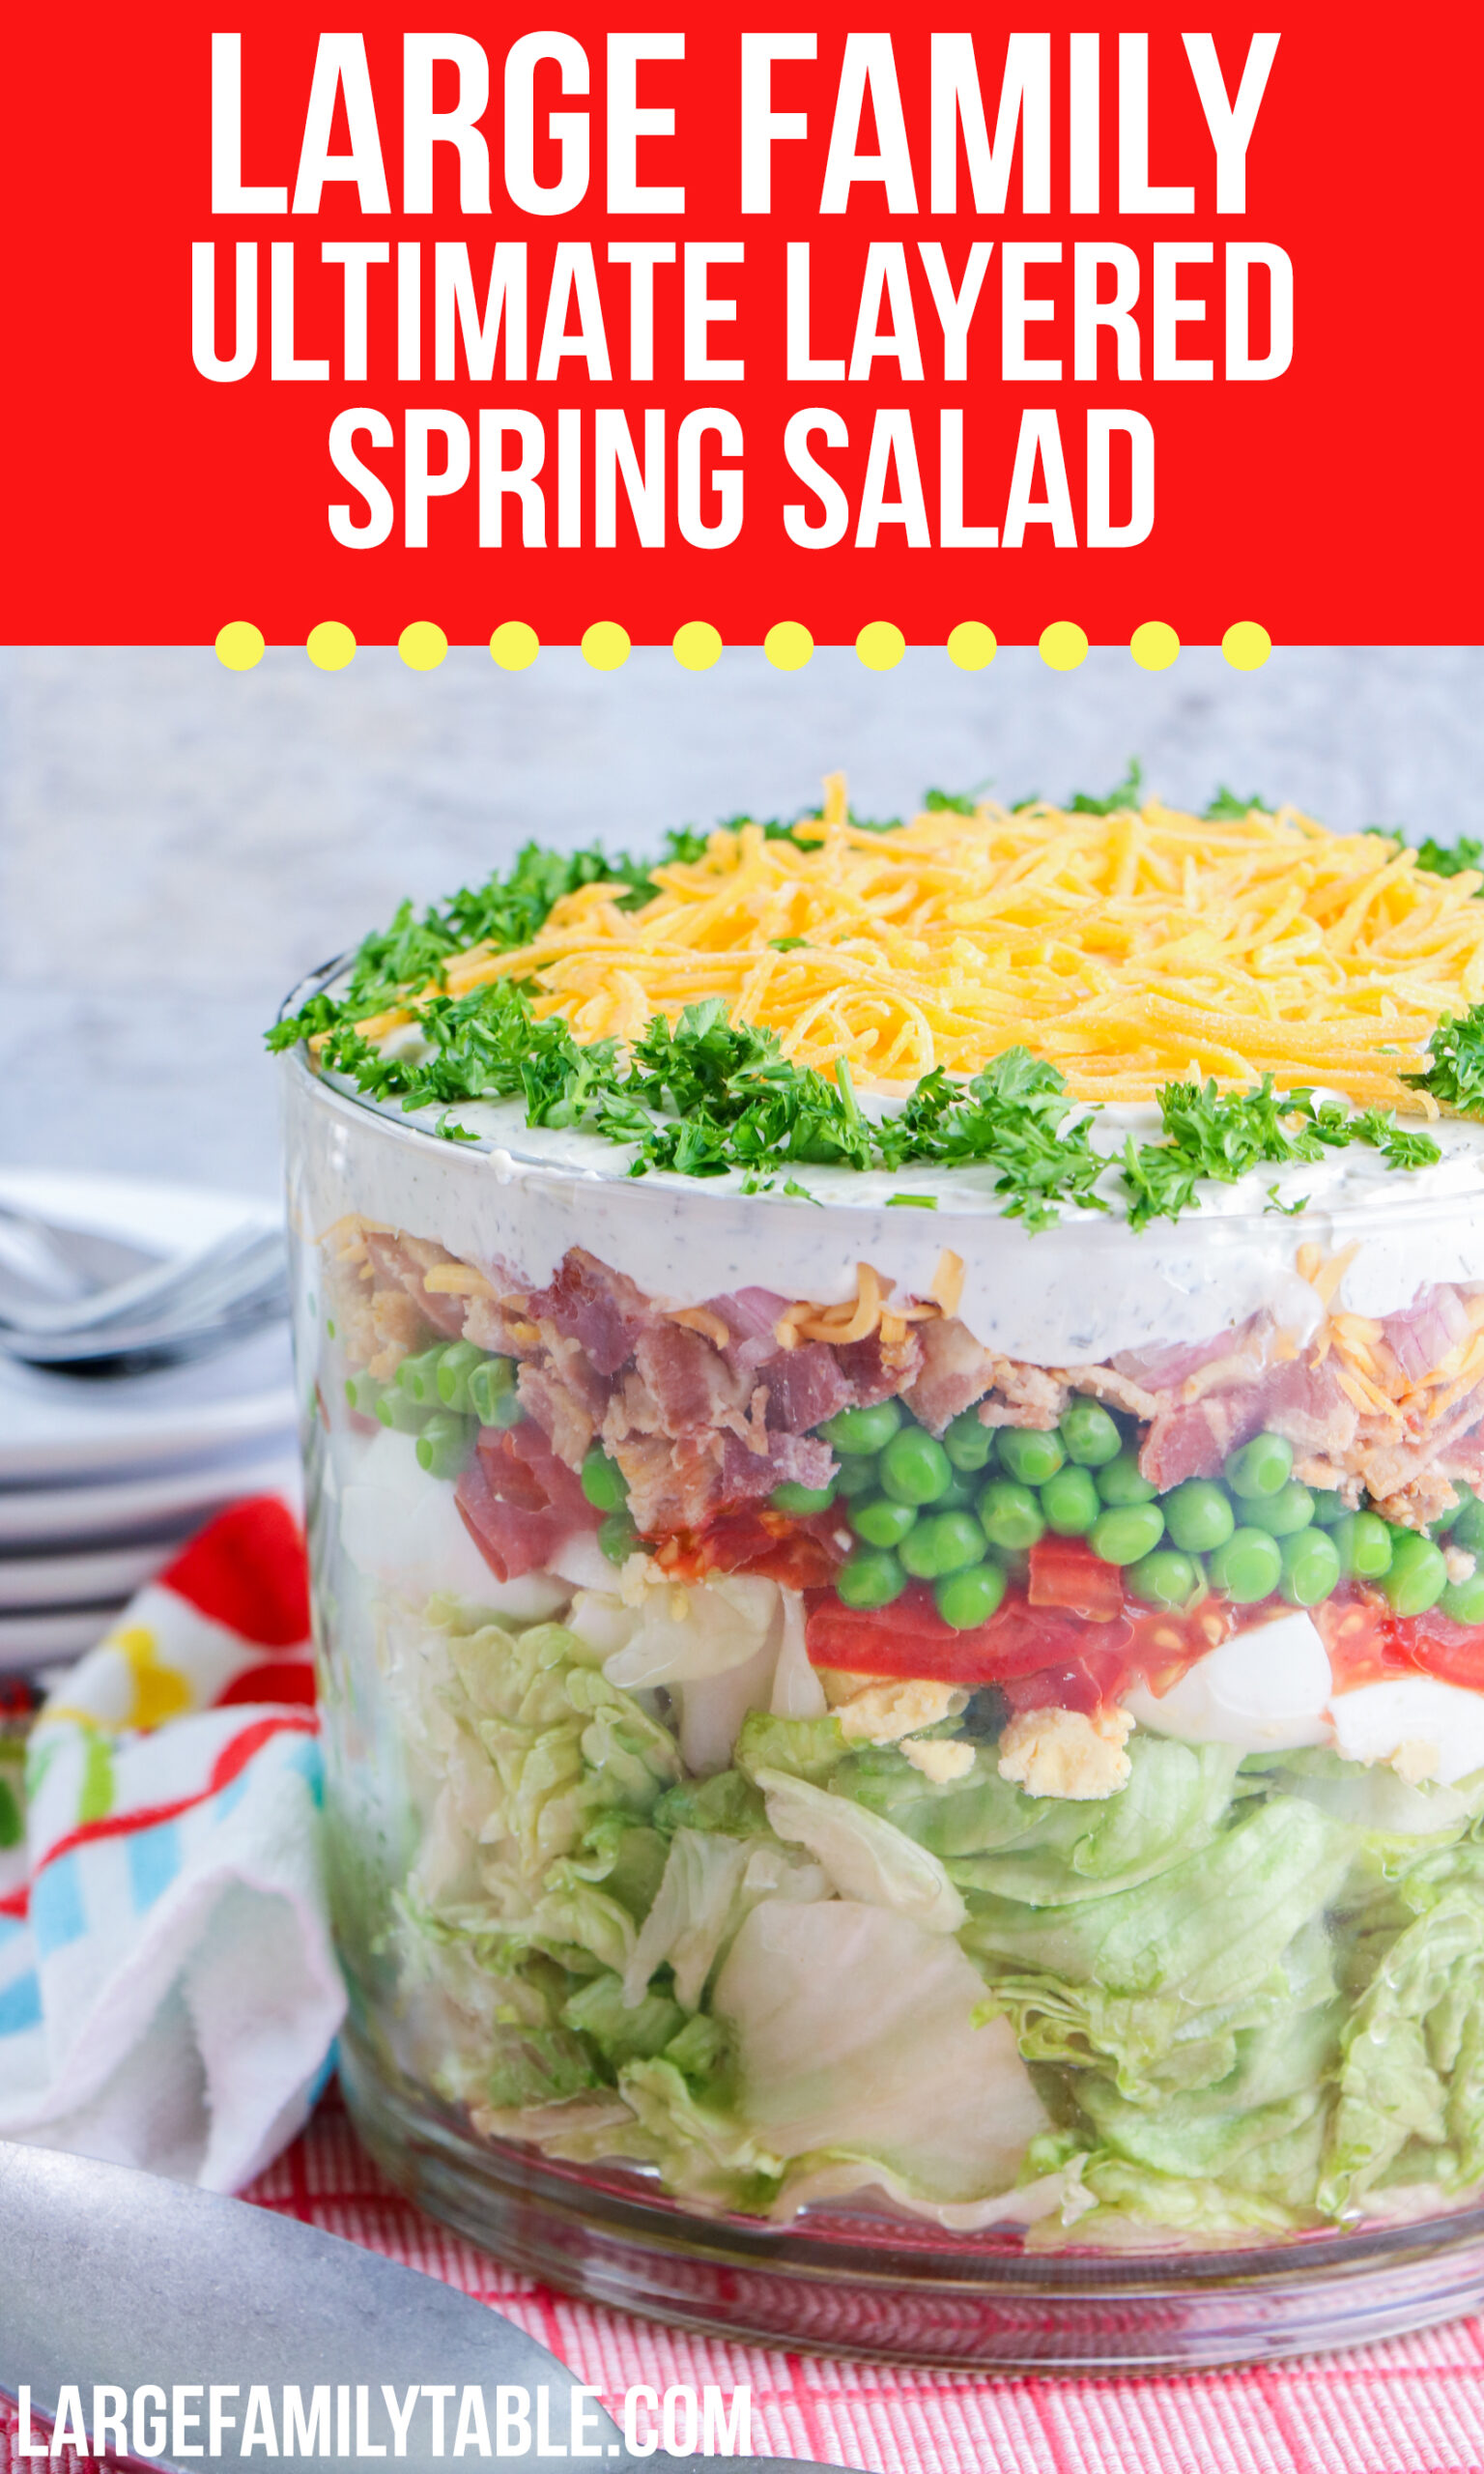 17+ Large Family Ultimate Layered Spring Salad Stock